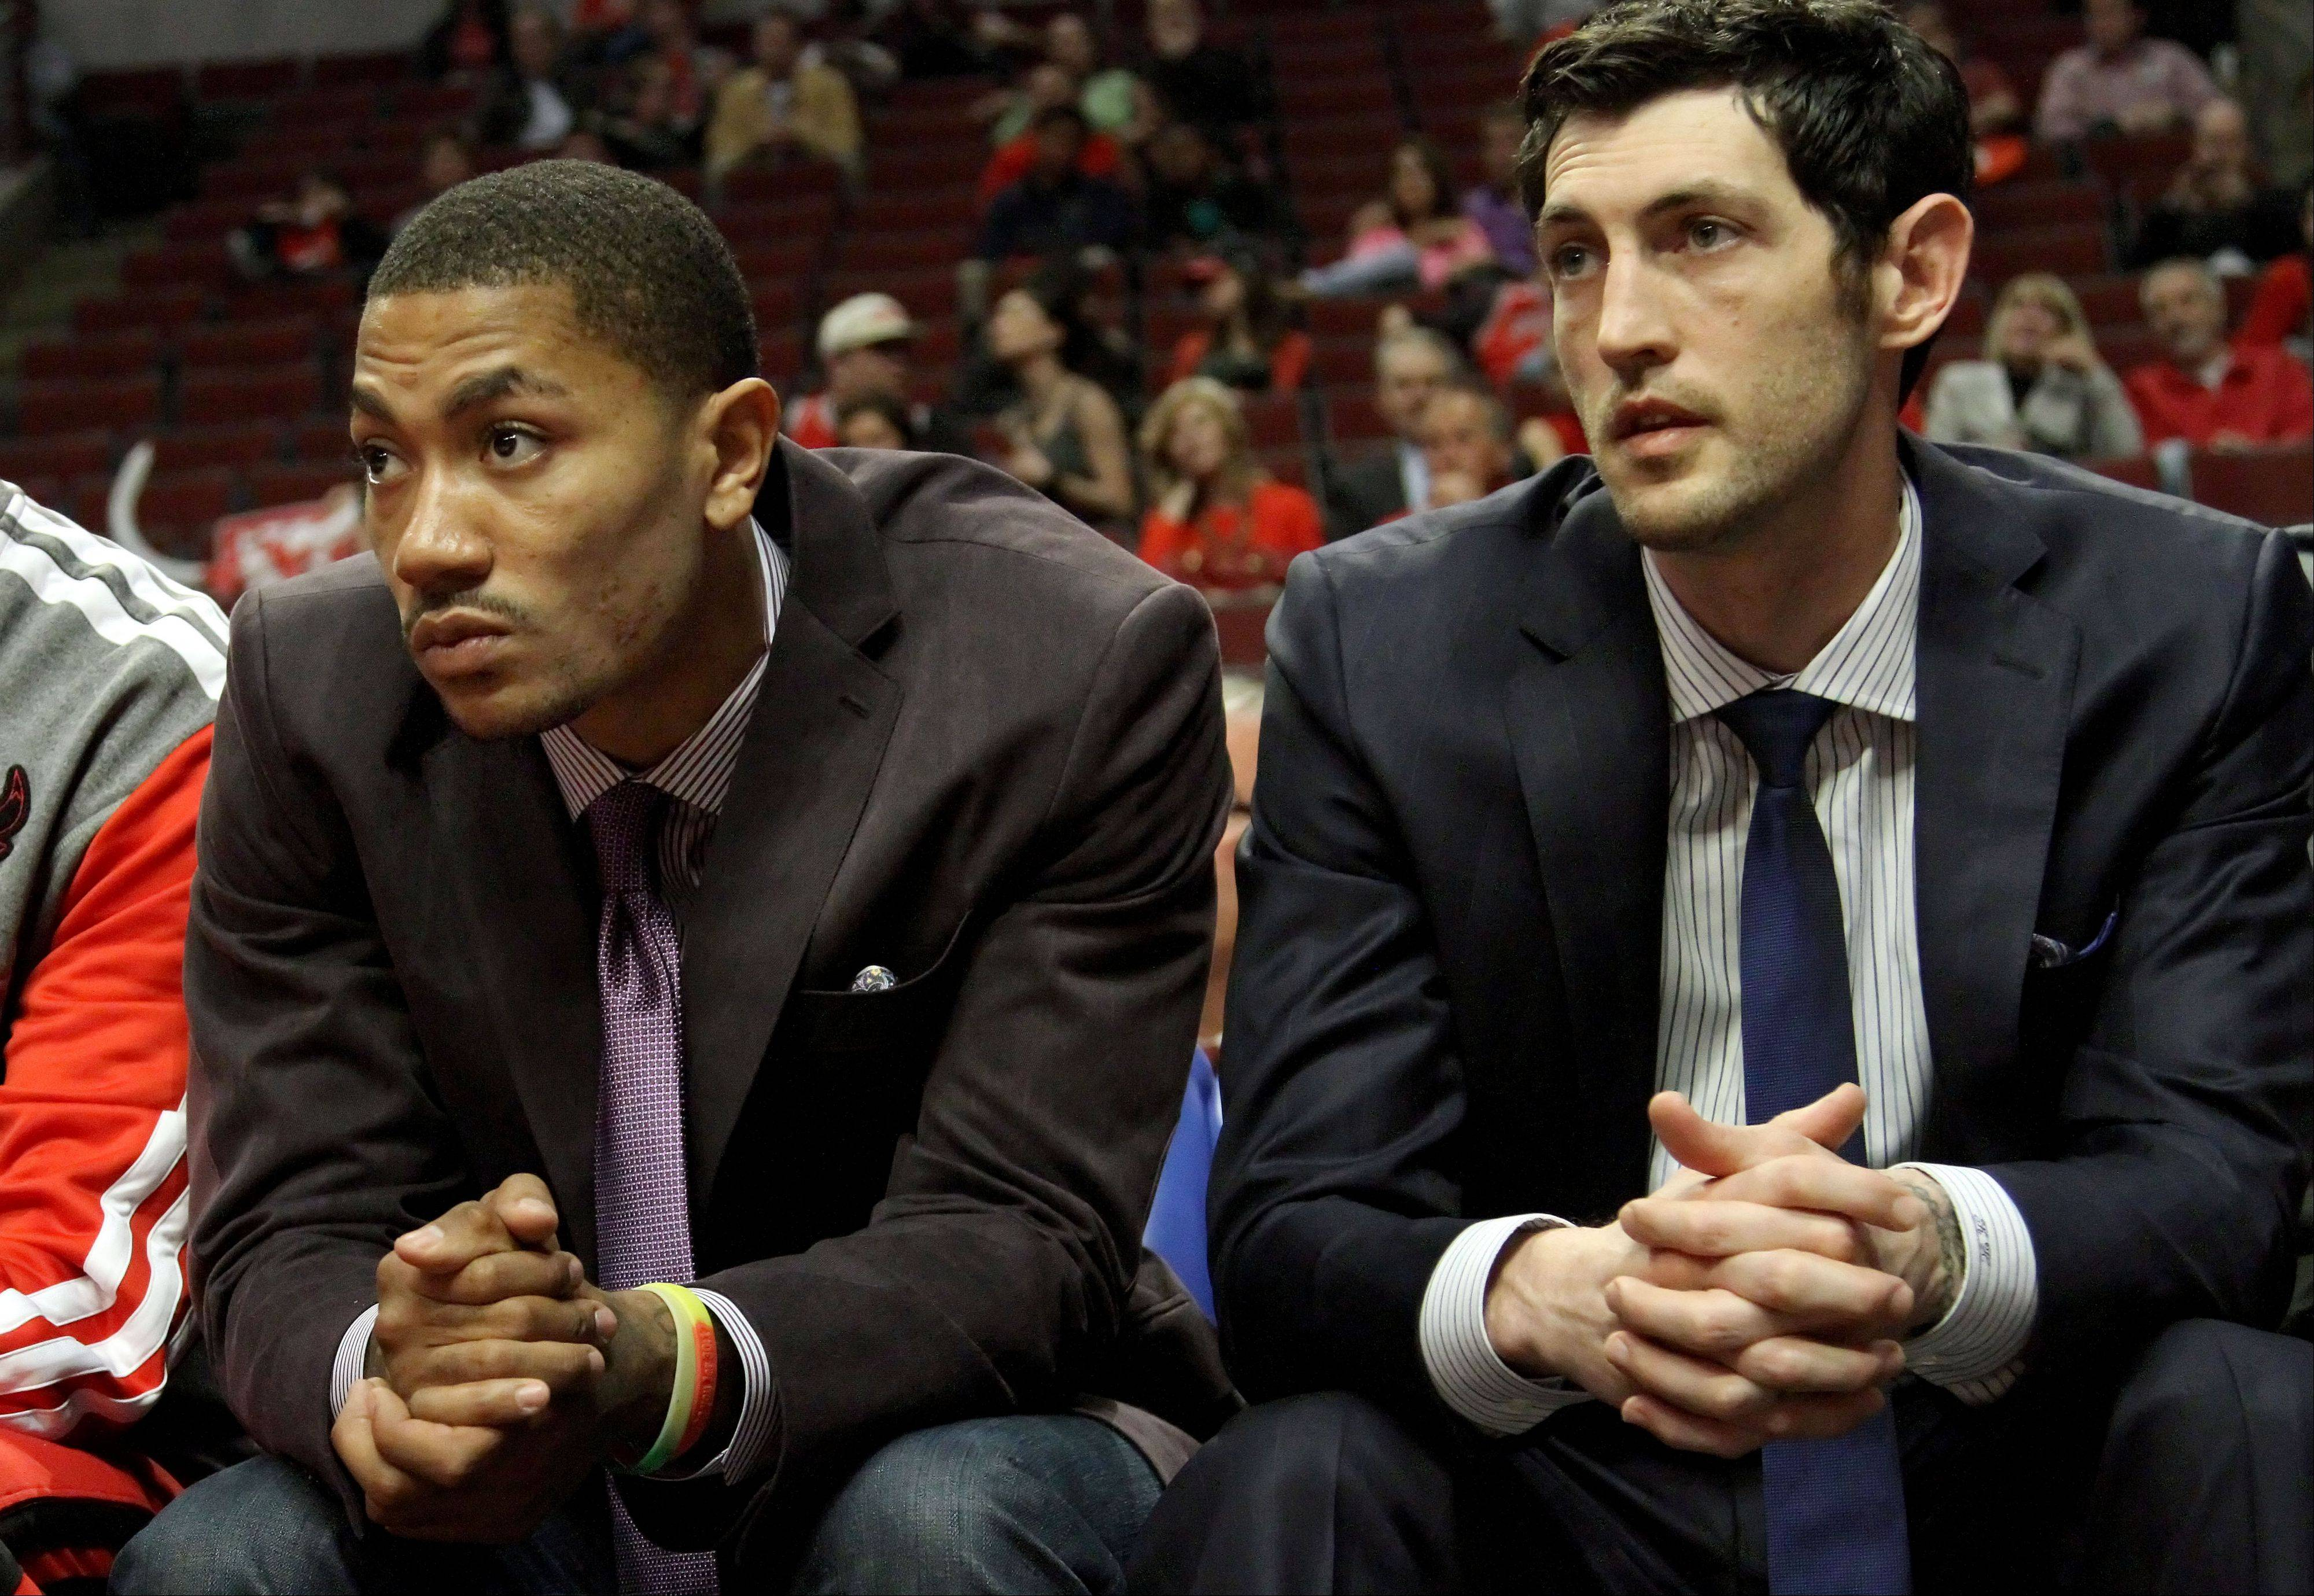 Bulls guard Derrick Rose missed the entire NBA season, and Kirk Hinrich sat out 30 games with various injuries. While Bulls officials once thought Hinrich could play point to give Rose some time at shooting guard, it's more likely Hinrich will backup Rose next season.